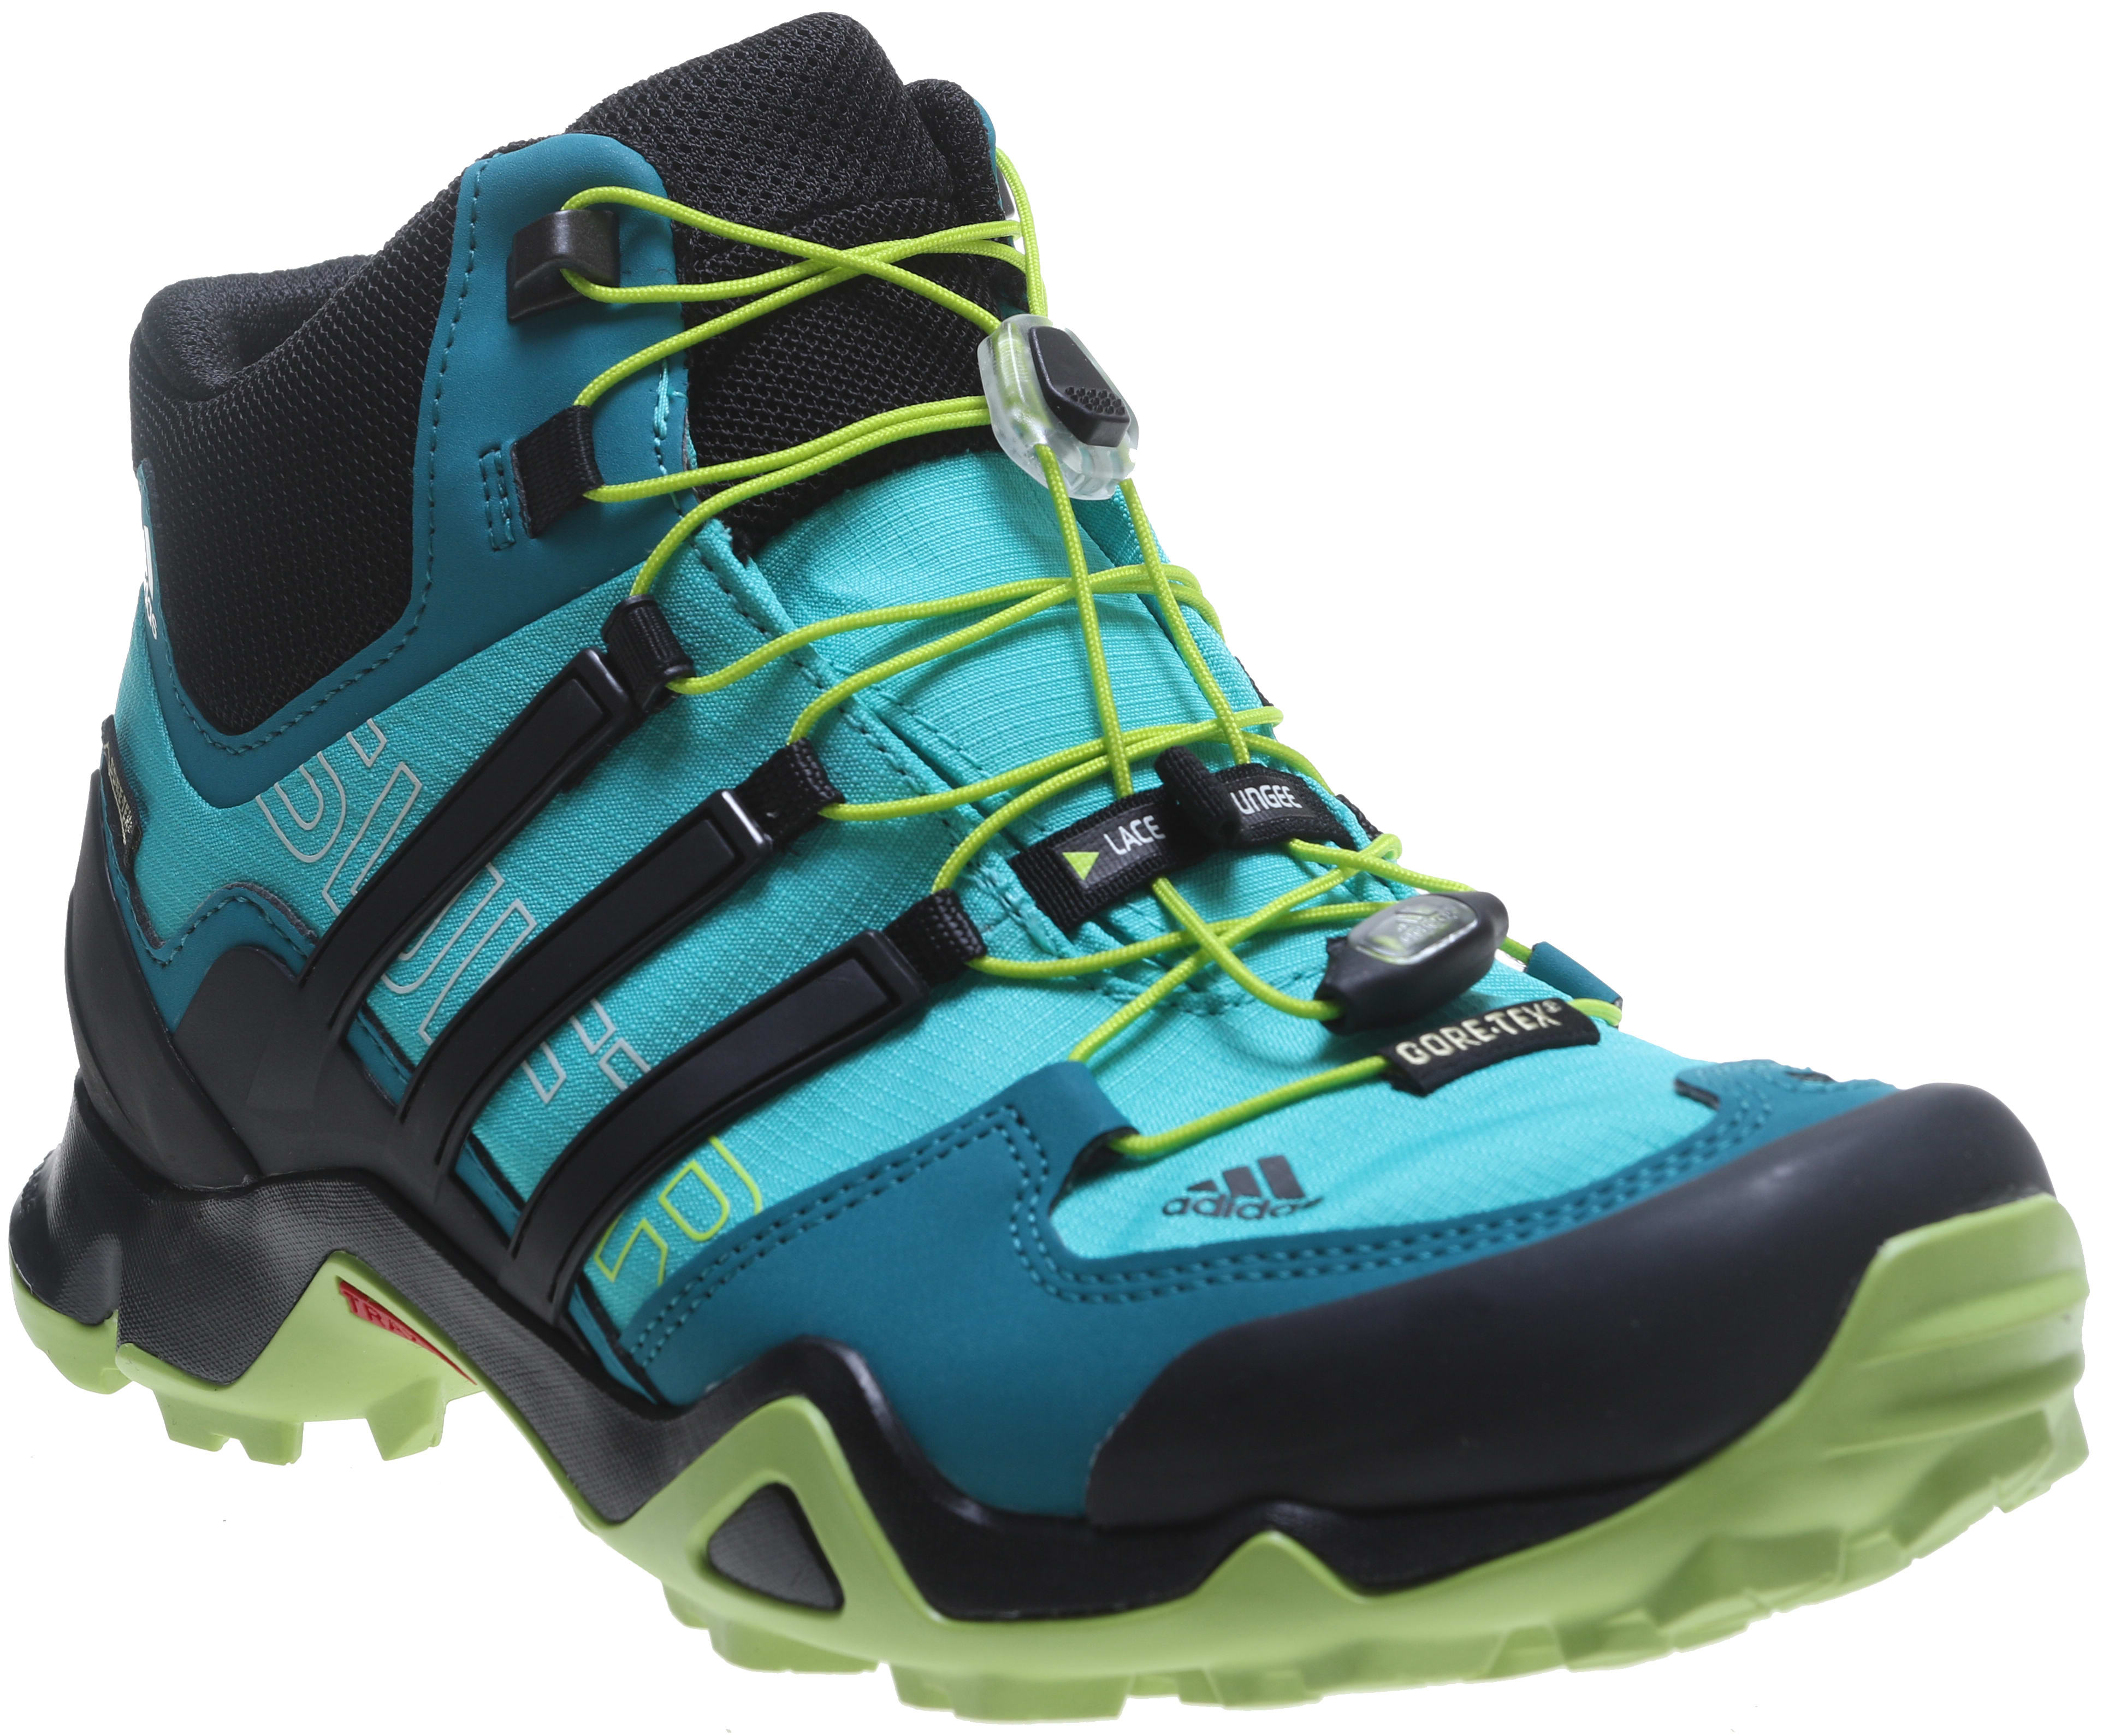 On Sale Adidas Terrex Swift R Mid GTX Hiking Boots - Womens up to ...